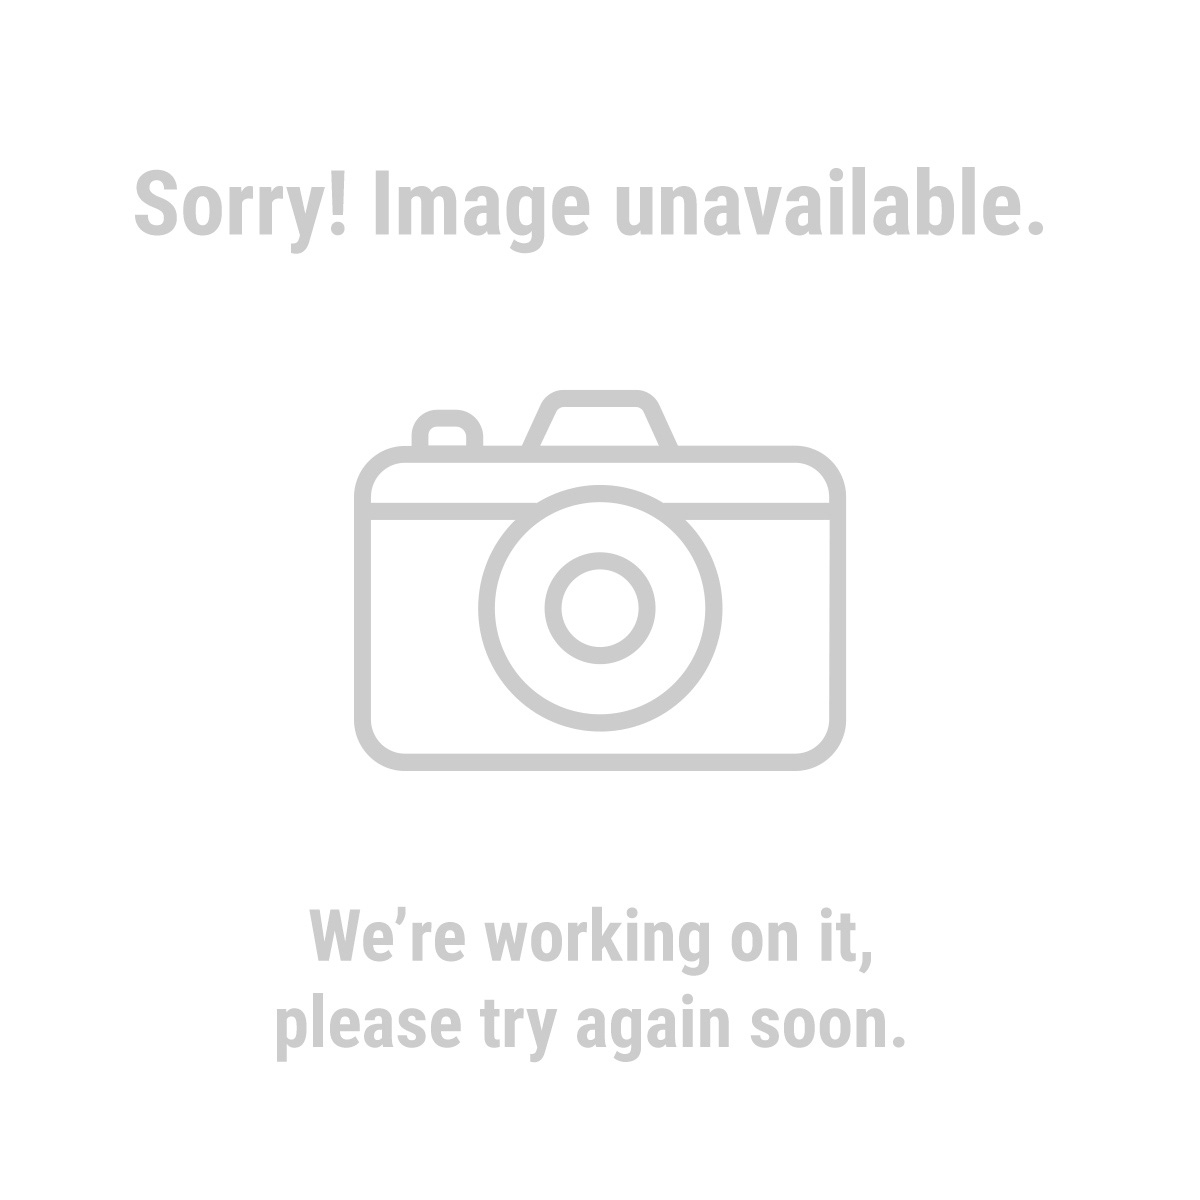 1722 9 Piece Boring Bar Set